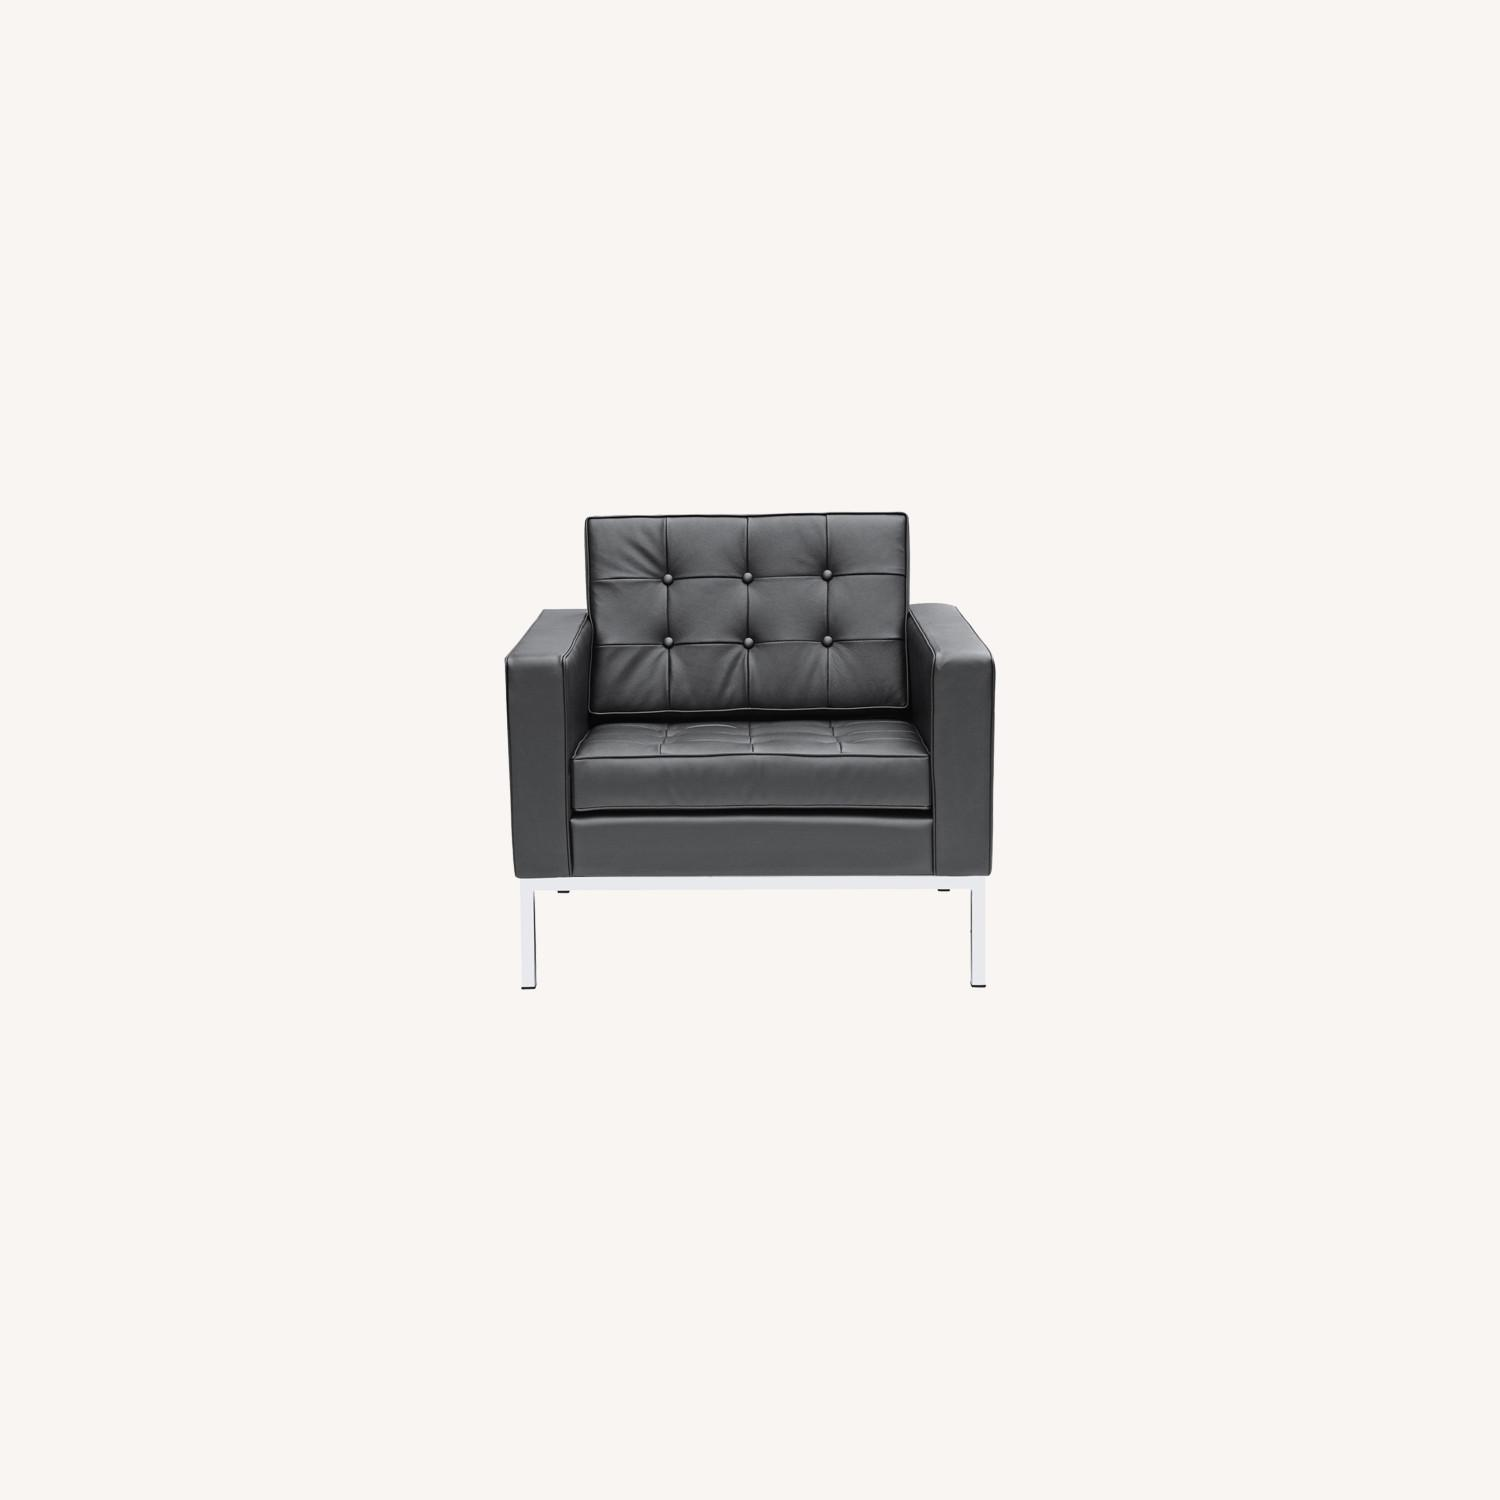 Modern Arm Chair In Black Italian Leather - image-7